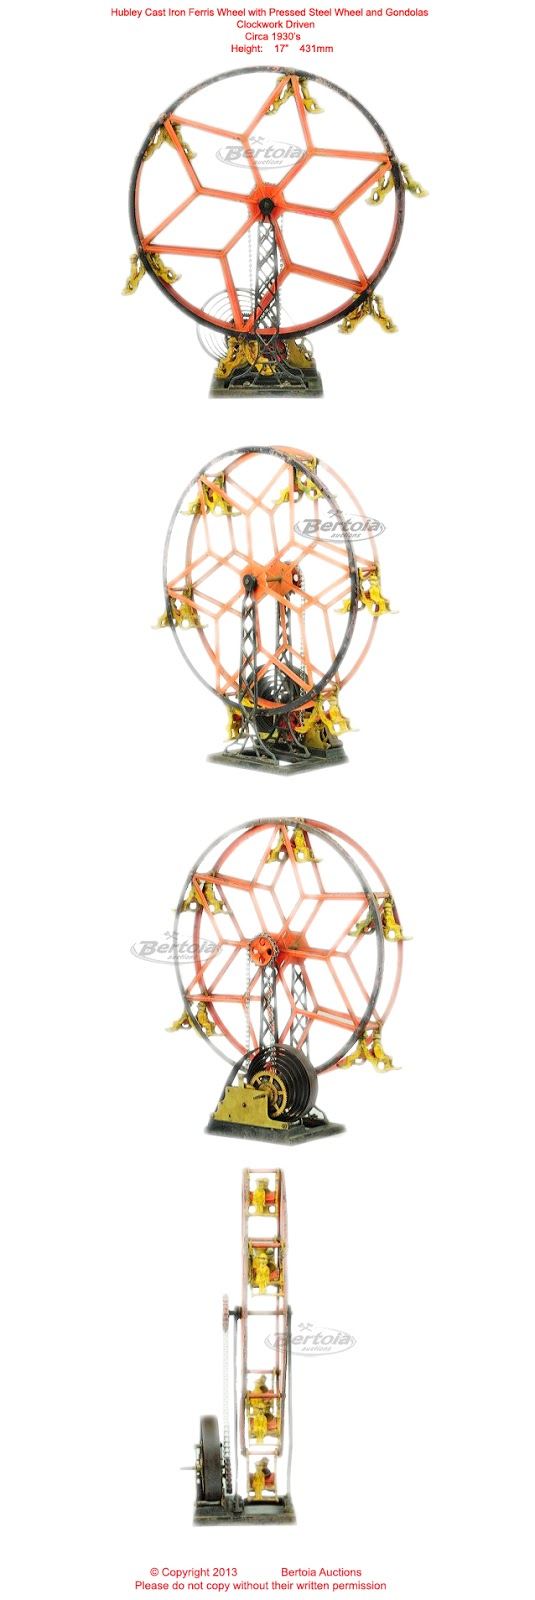 Old Antique Toys: The Hubley Ferris Wheel